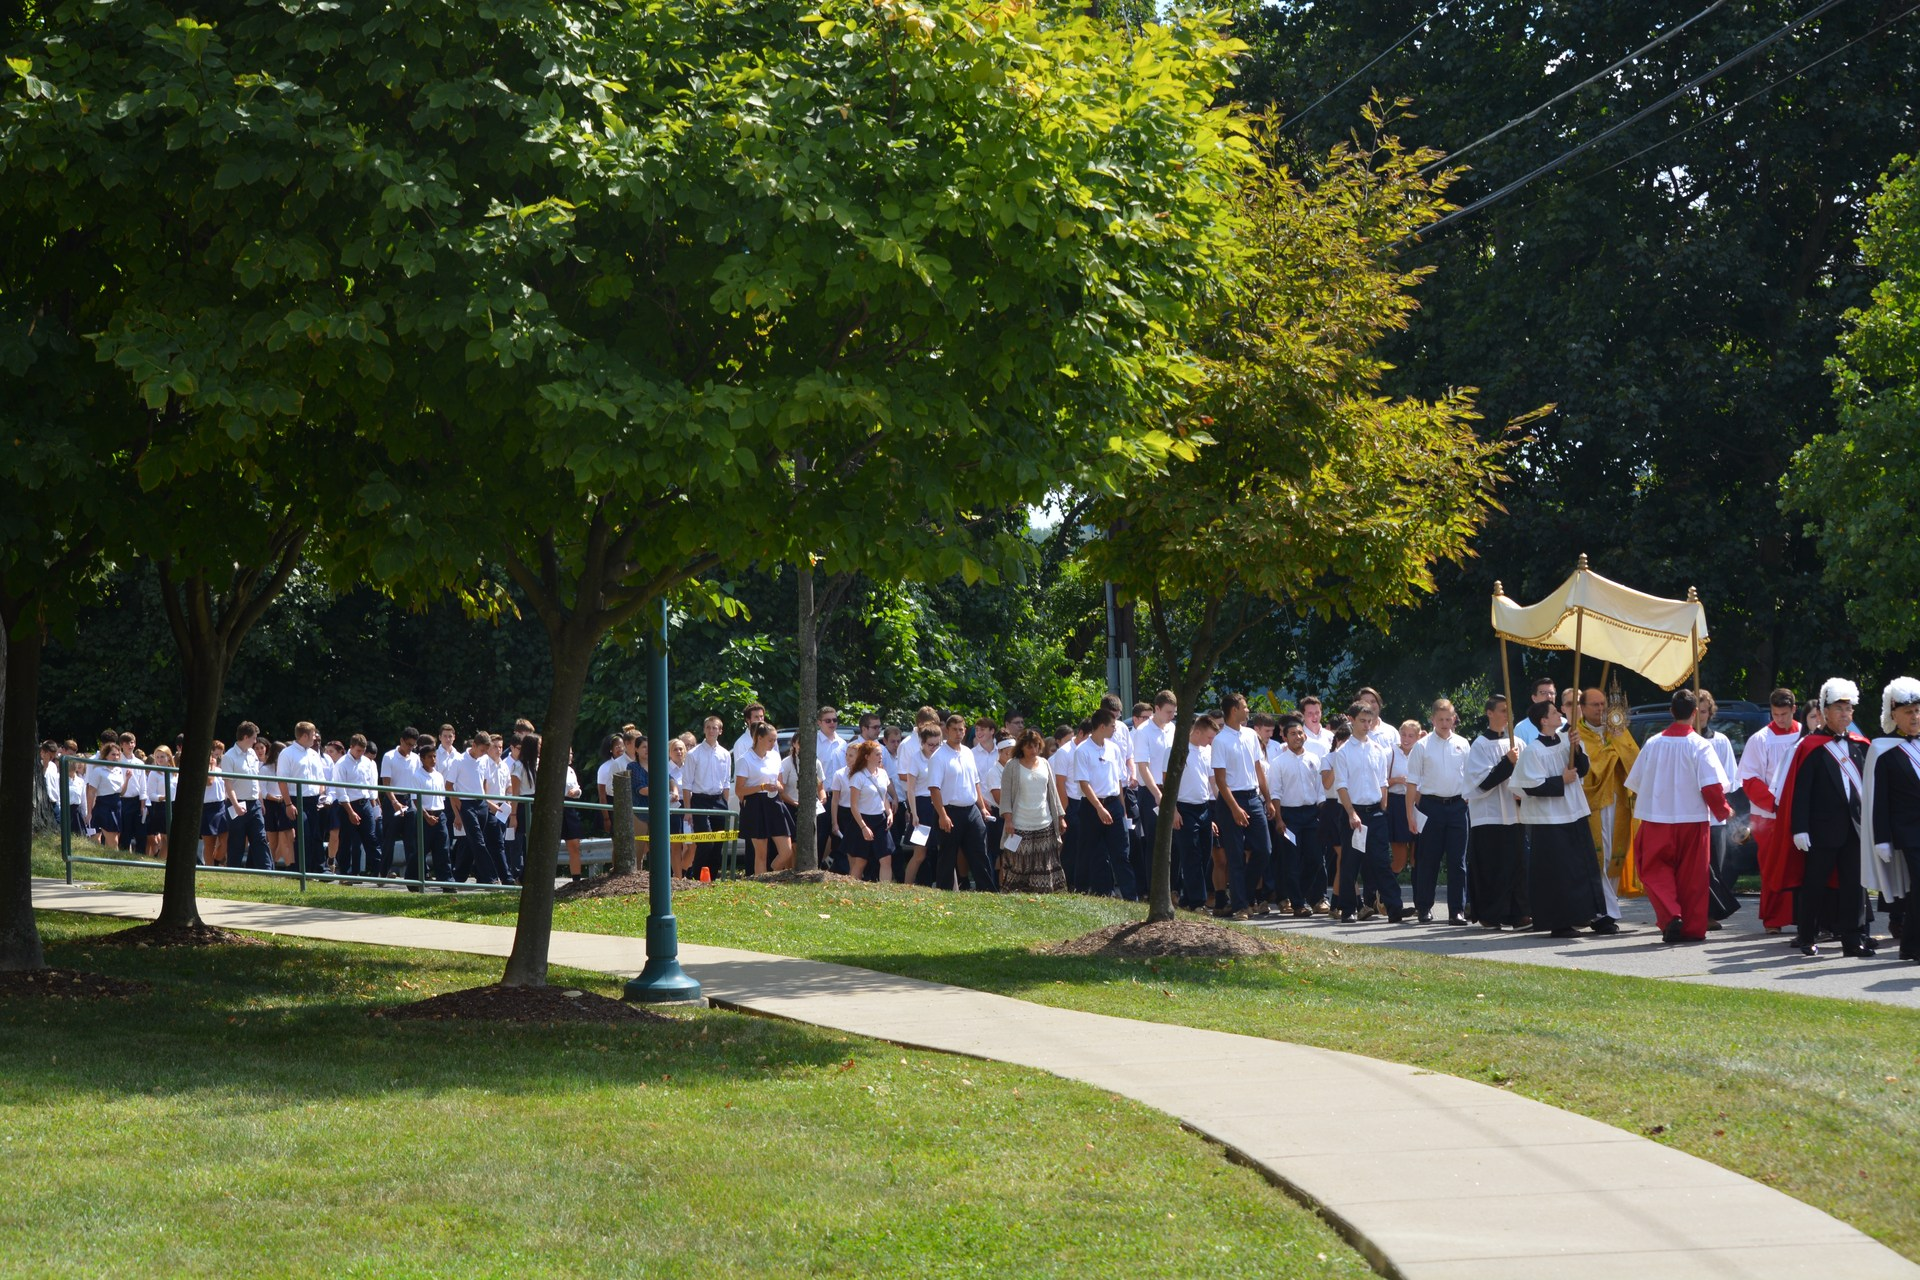 The entire school community participates in the annual eucharistic procession through the OLSH campus